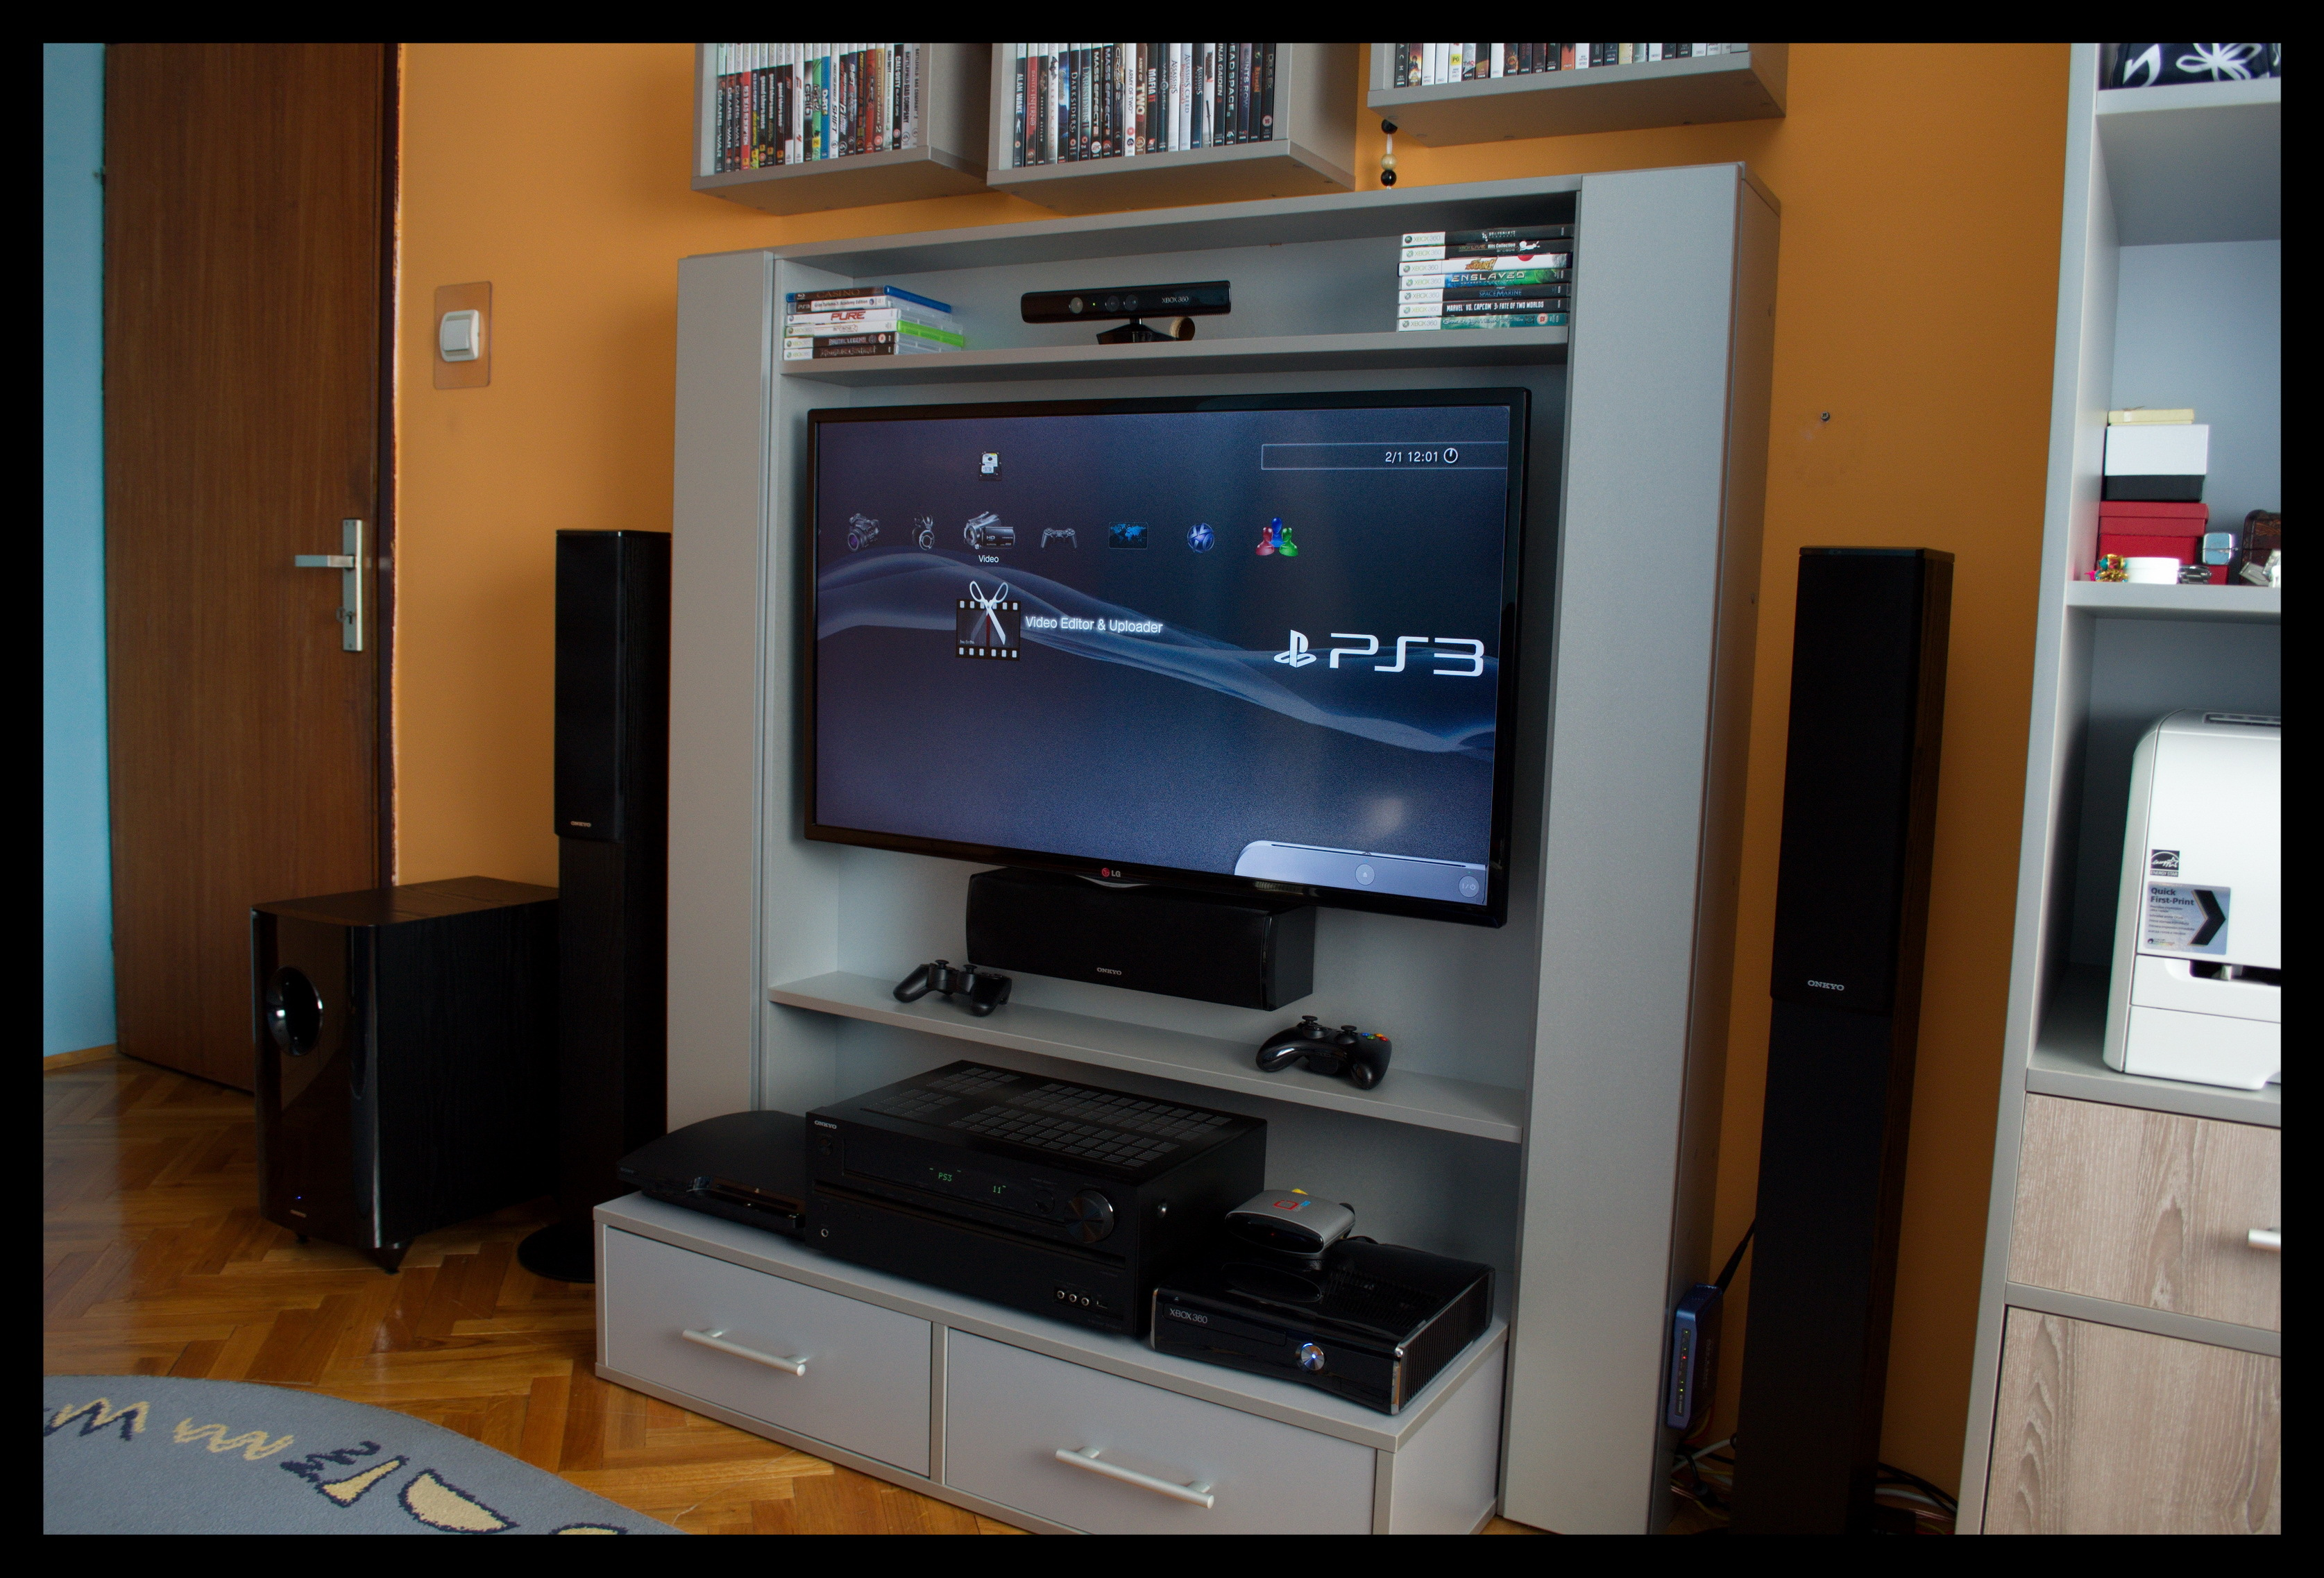 Show us your gaming setup 2014 edition neogaf for Small room 7 1 setup